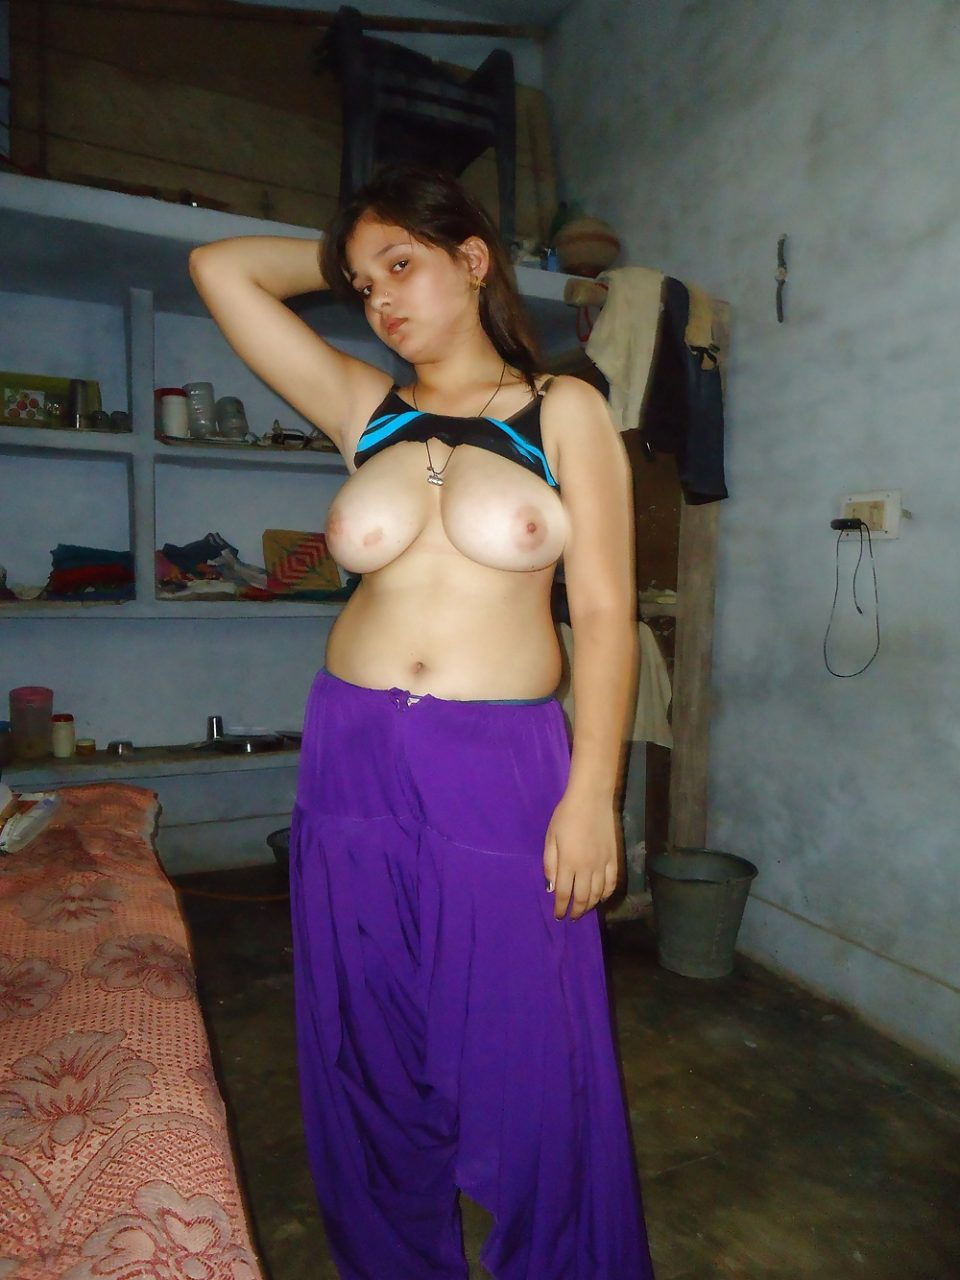 Love date indian aunty nude photo looks